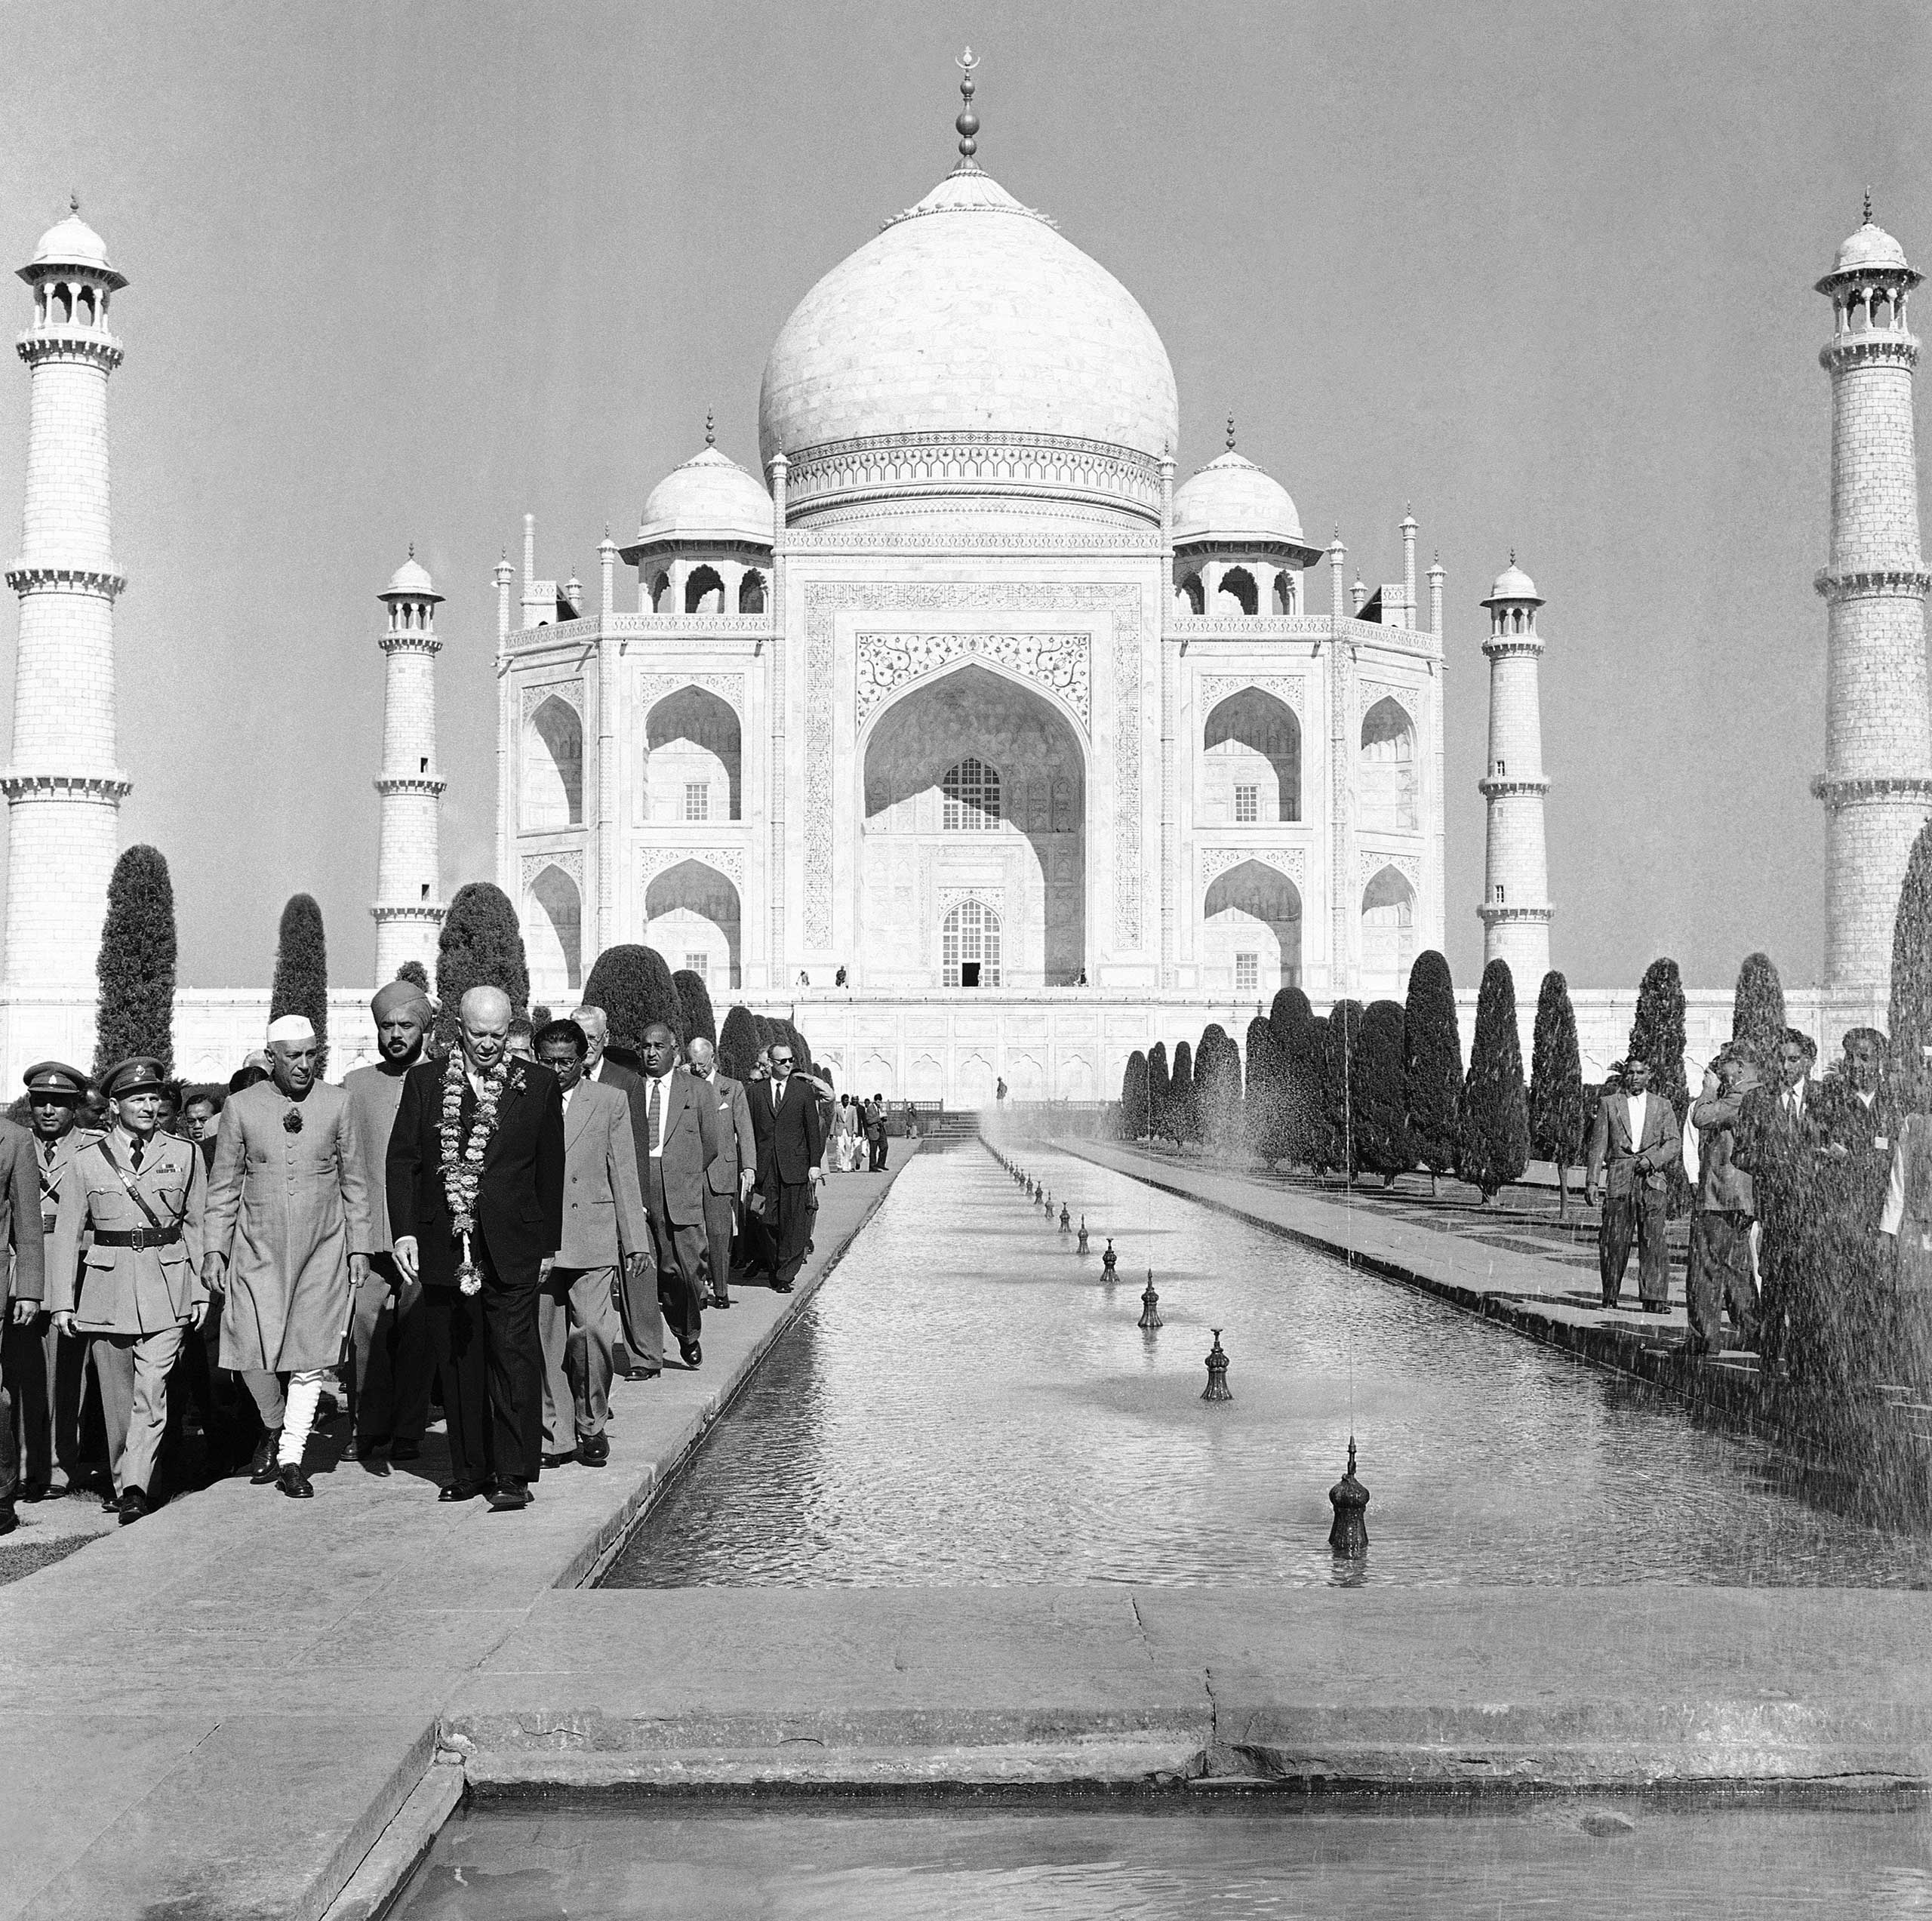 <b>1959:</b> US President Dwight D. Eisenhower makes the first official state visit to India', joining Indian Prime Minister Jawaharlal Nehru at the Taj Mahal at Agra, India on Dec. 13, 1959.